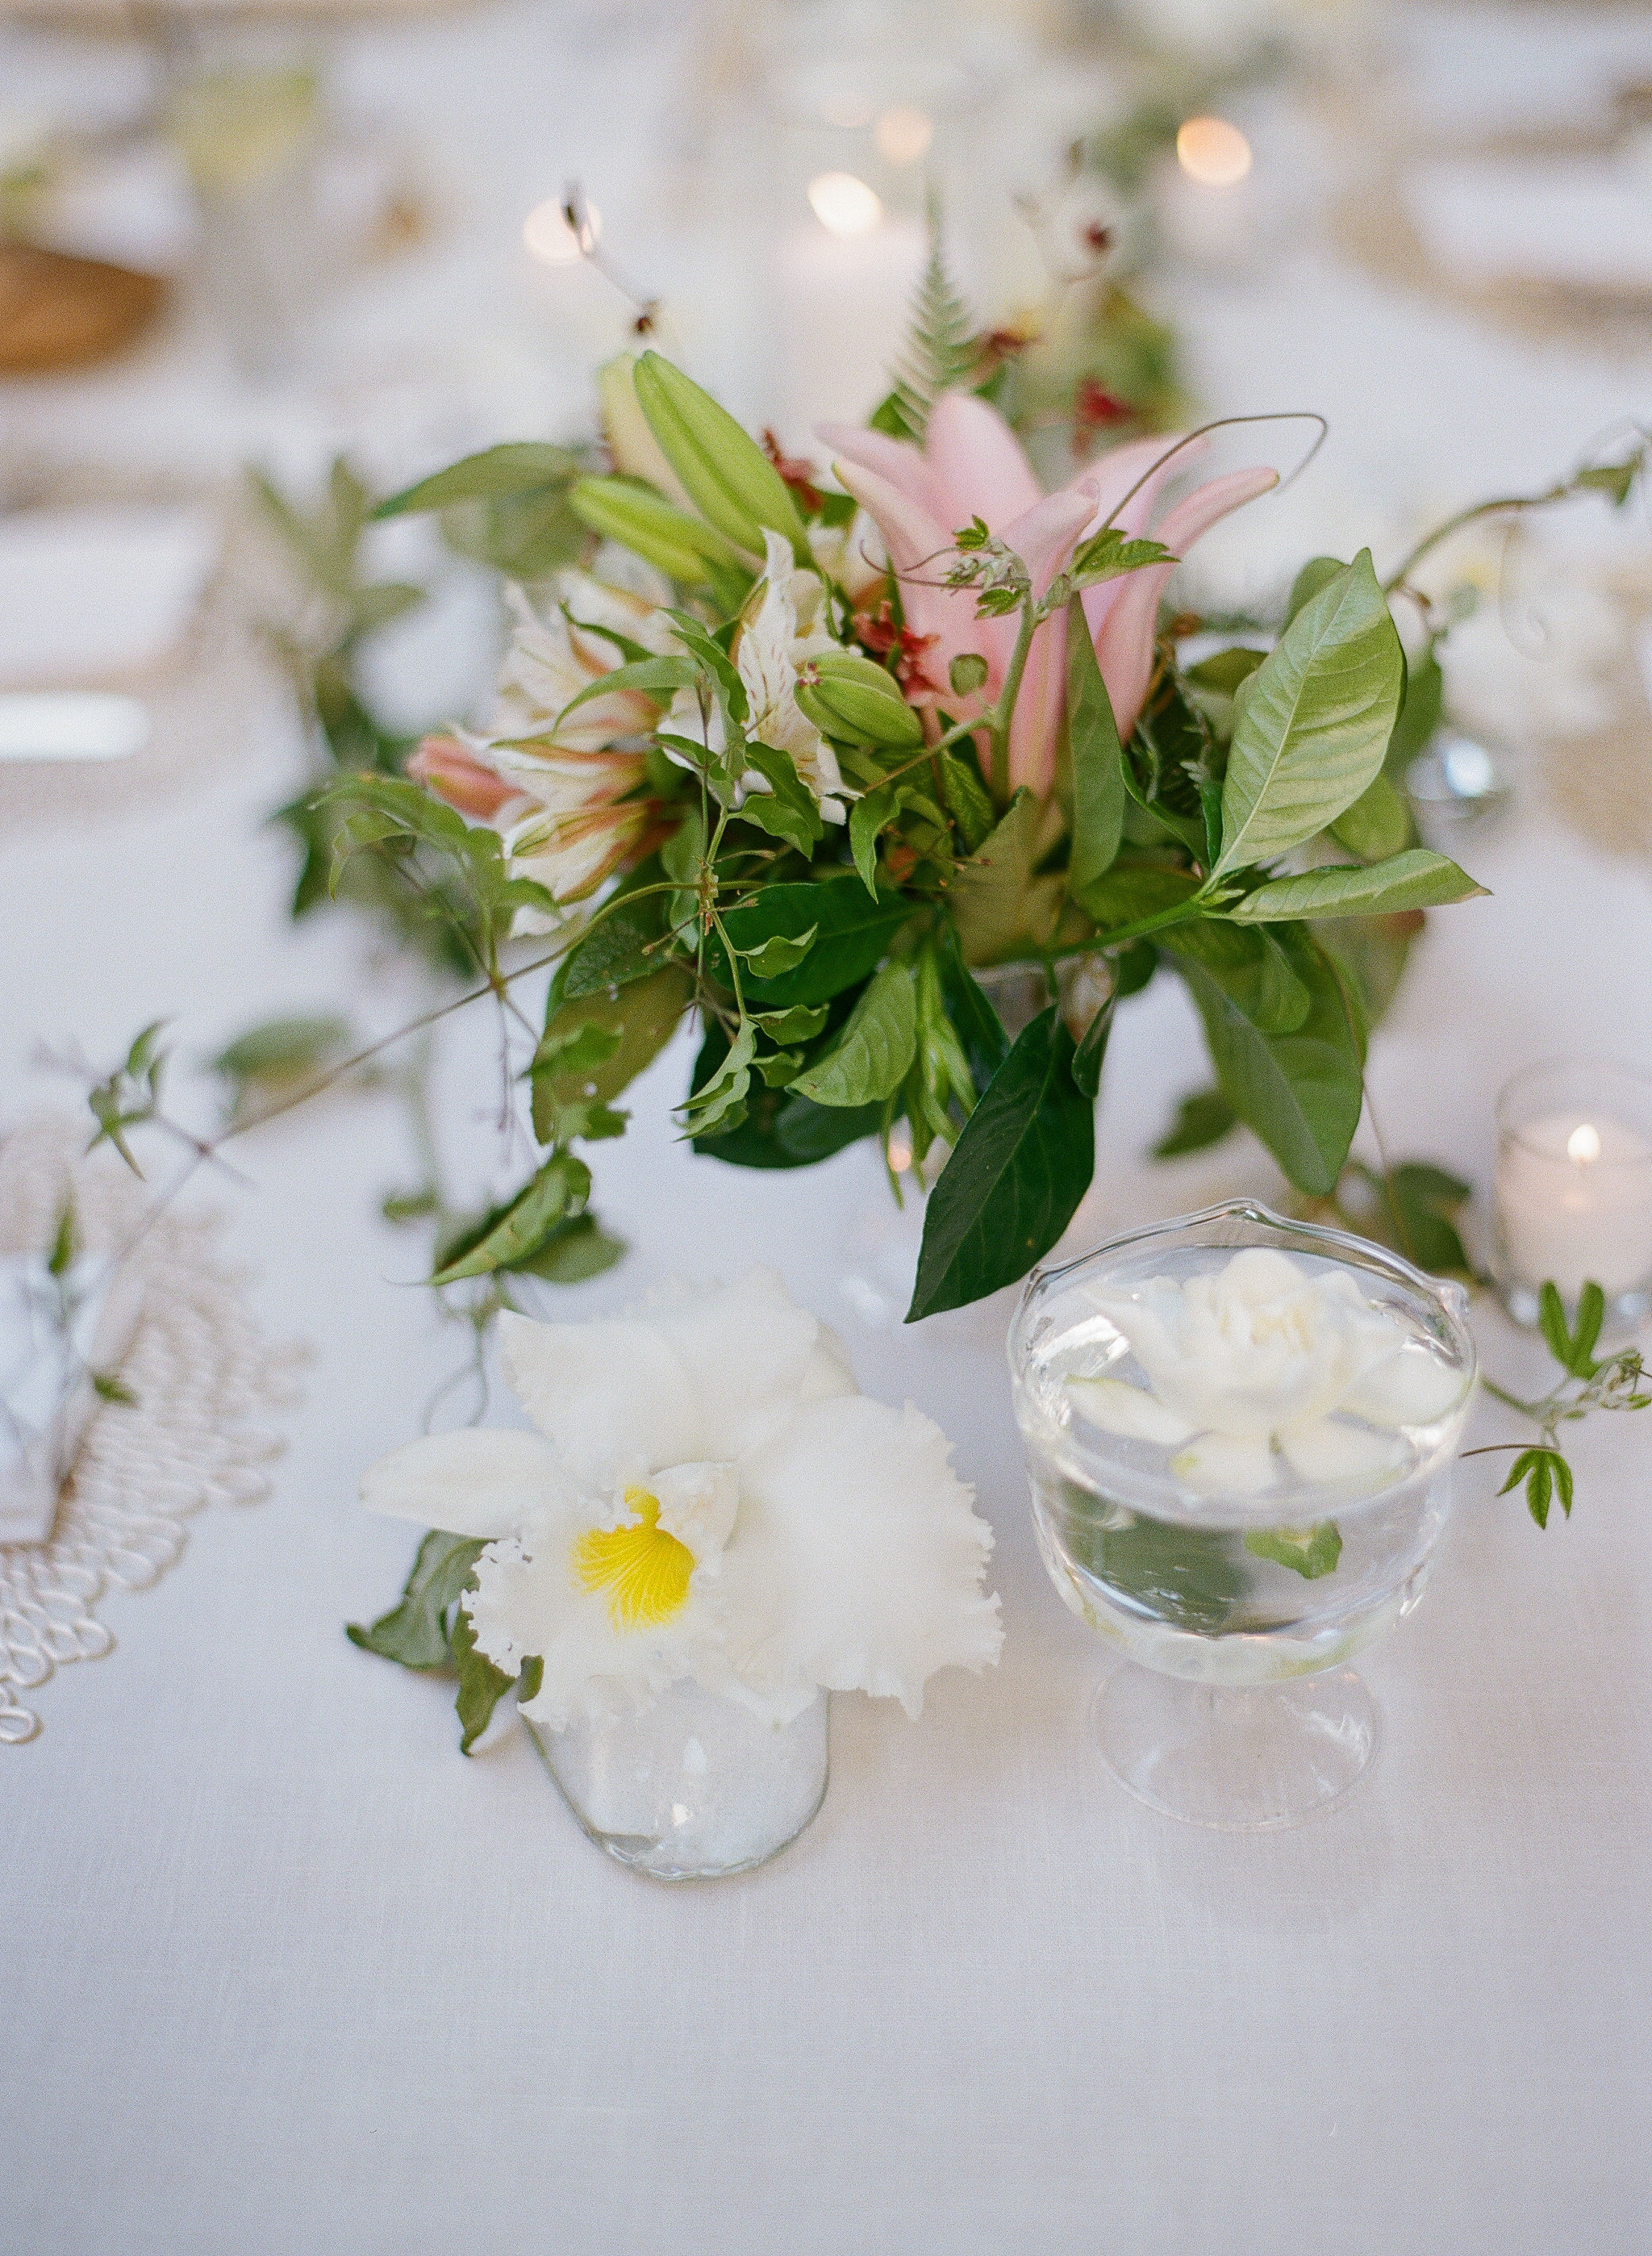 santabarbarawedding.com | Photo: Beaux Arts Photographie | Fern Bouquet Ideas